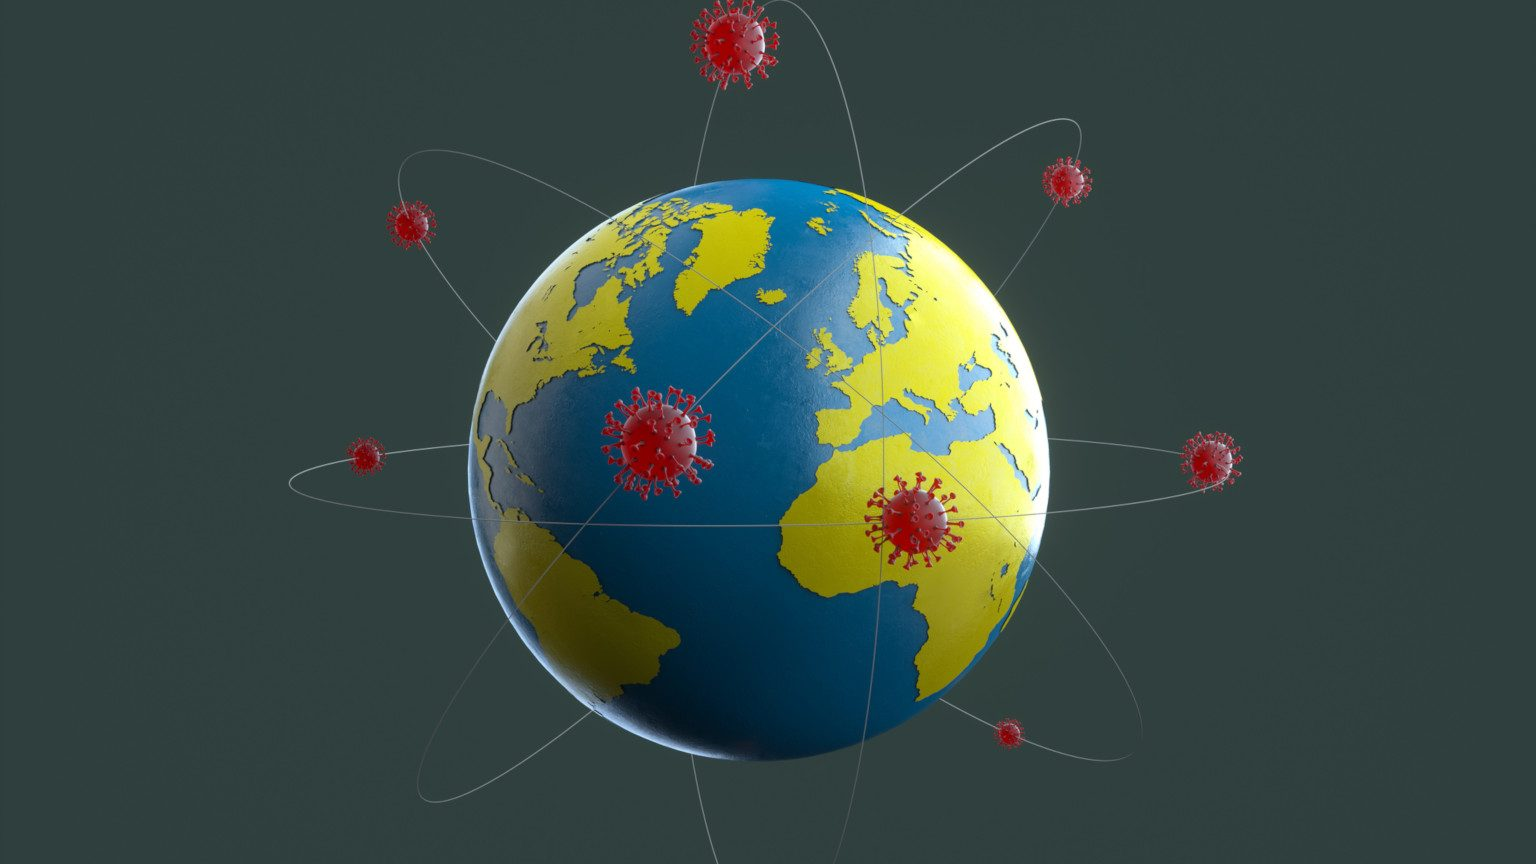 The globe with a virus surrounding it